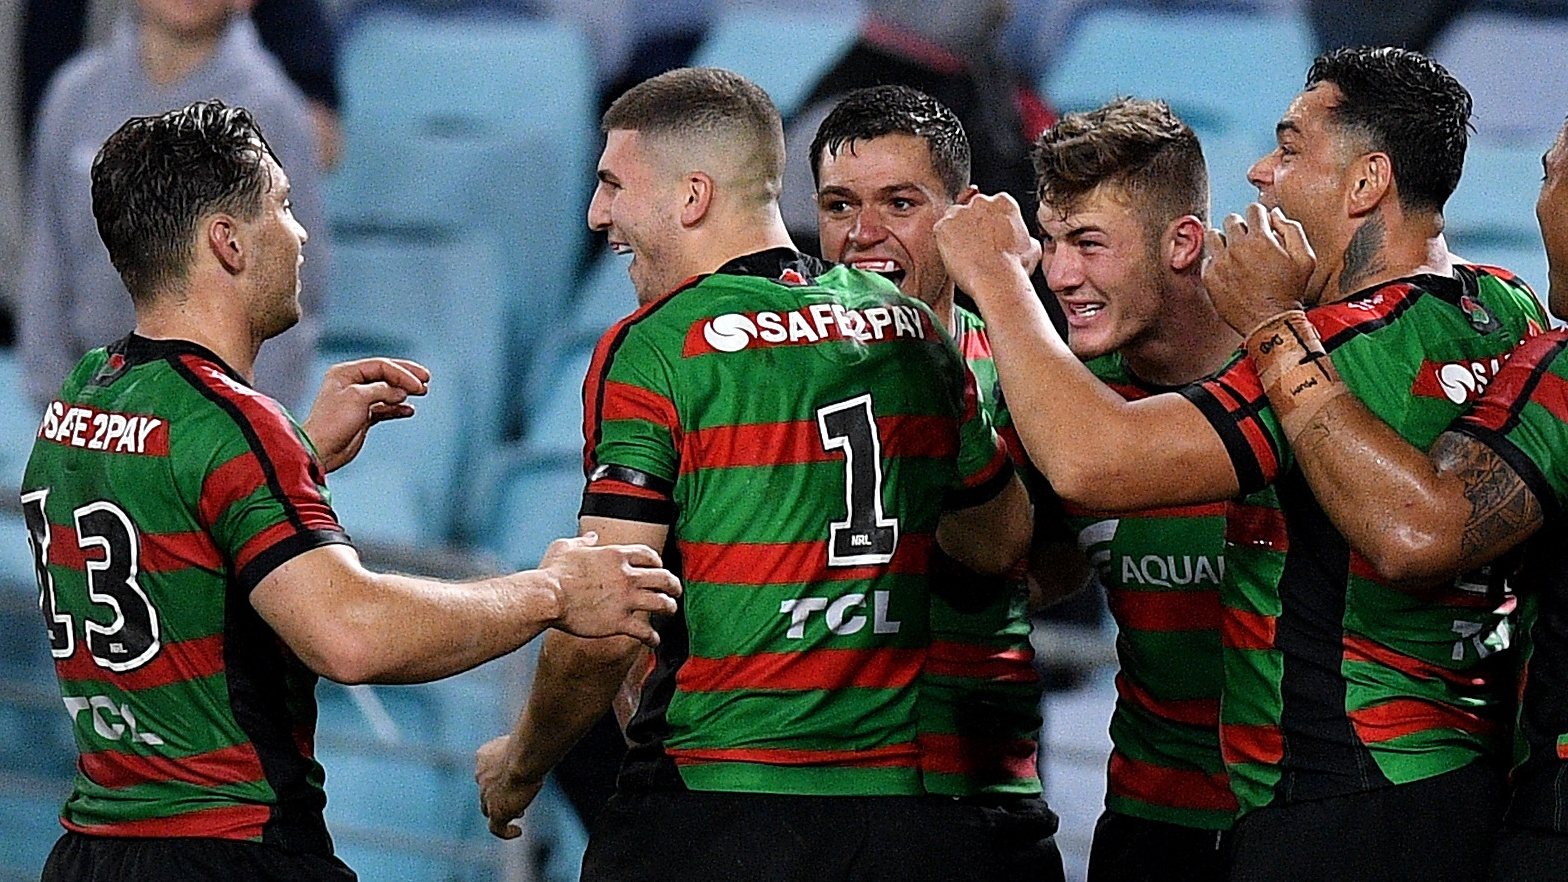 NRL Highlights: Rabbitohs v Dragons - Round 19